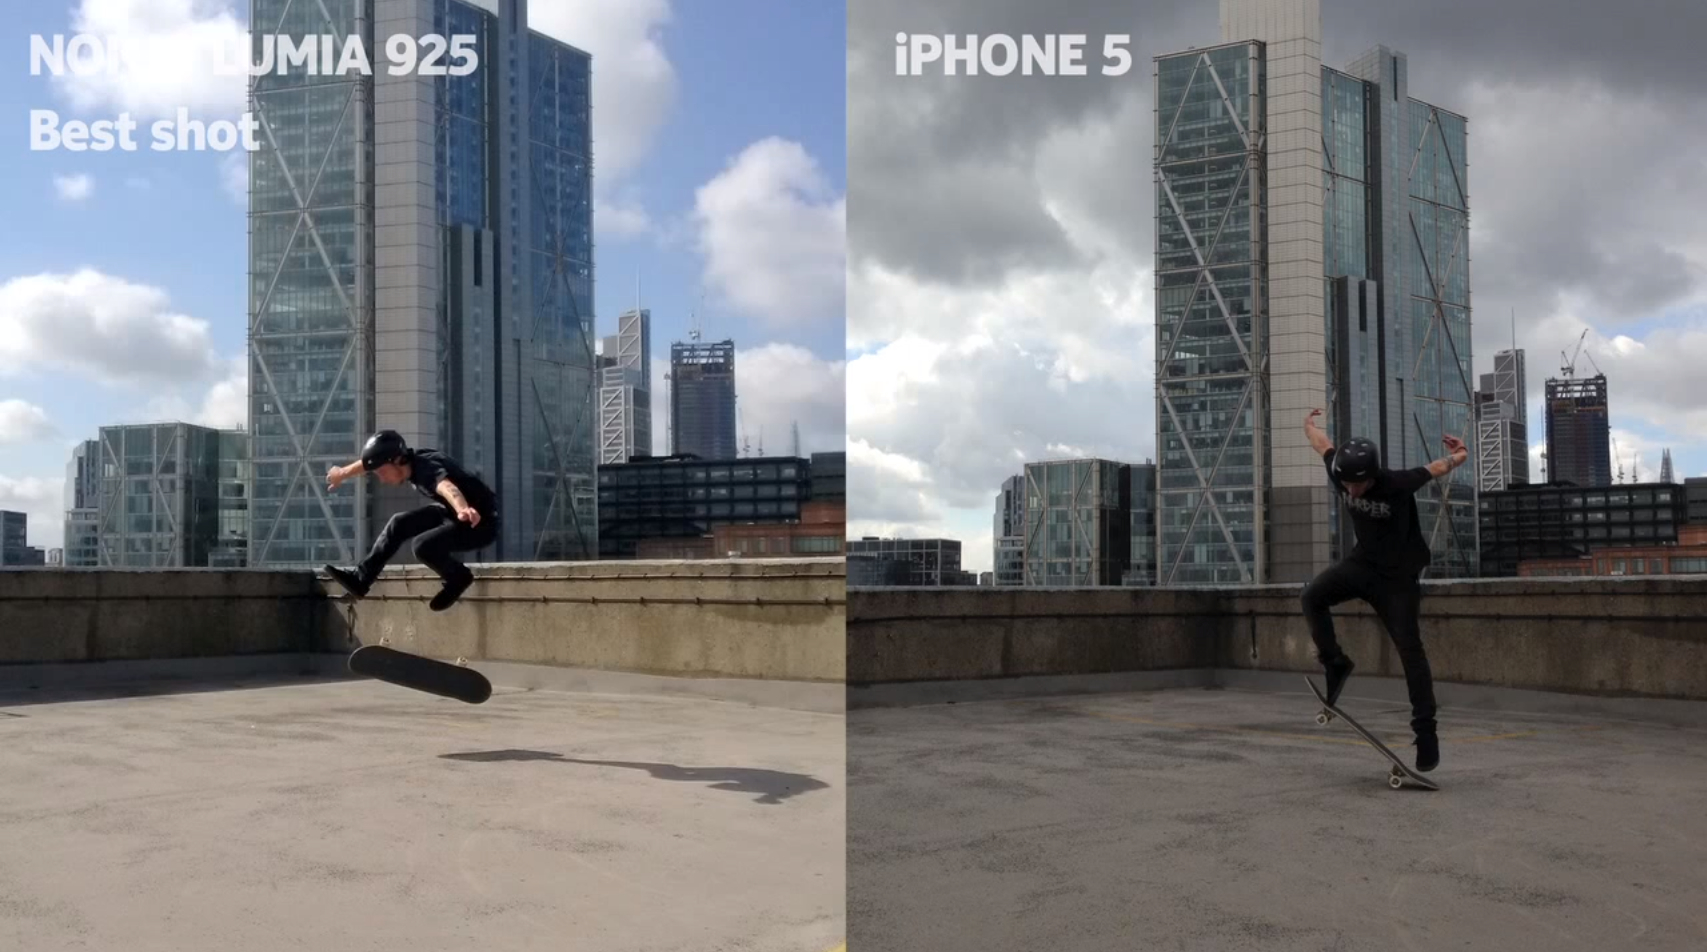 Comercial da Nokia - Lumia 925 vs. iPhone 5